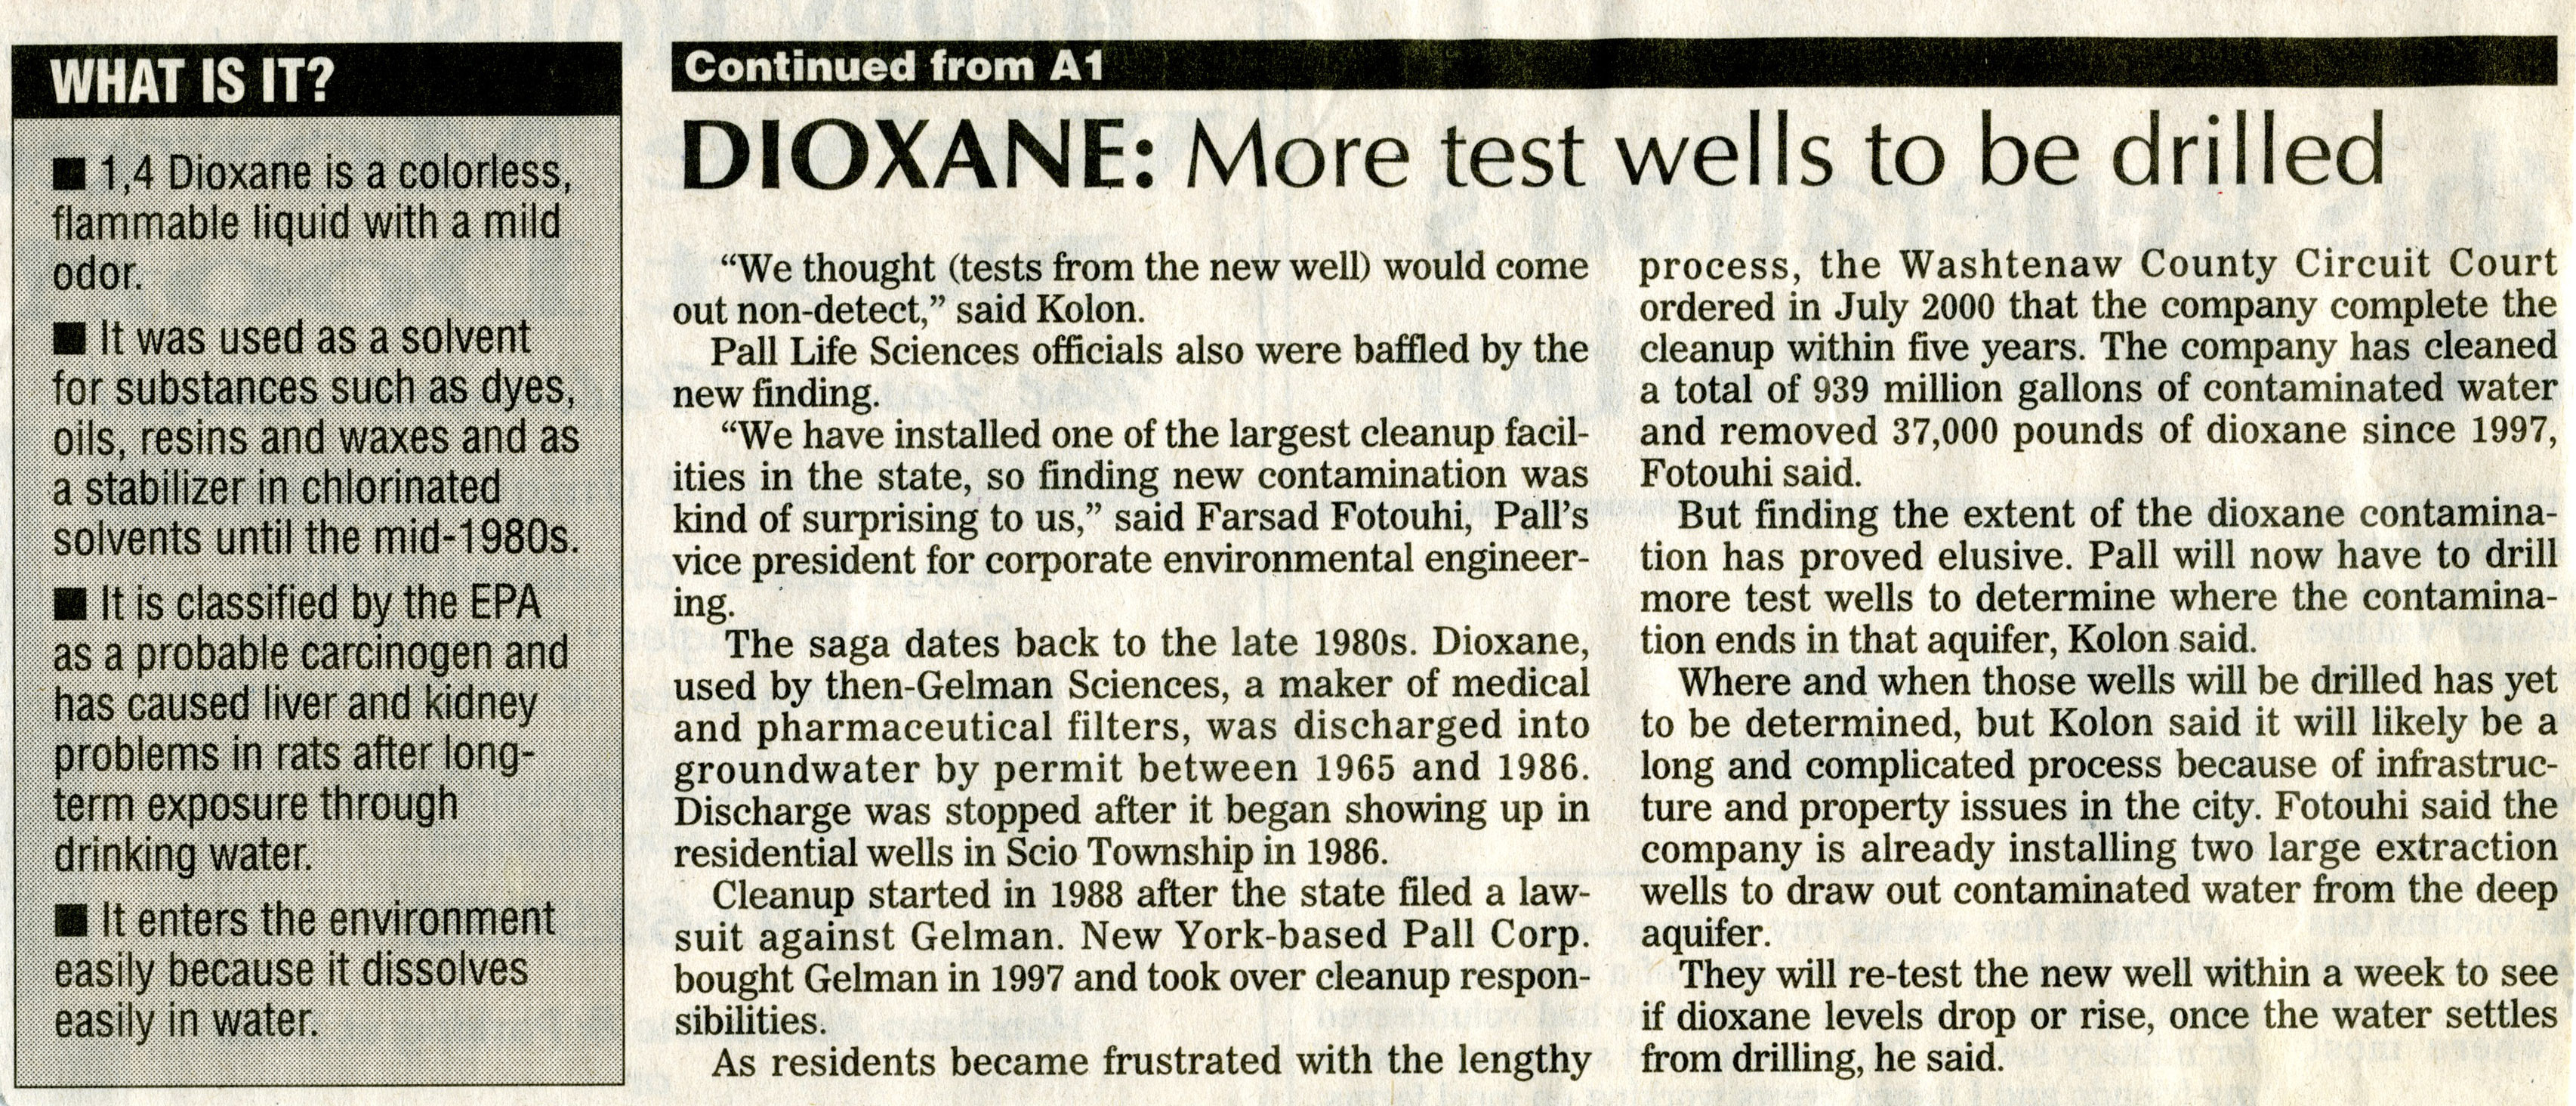 New dioxane findings raise concerns image